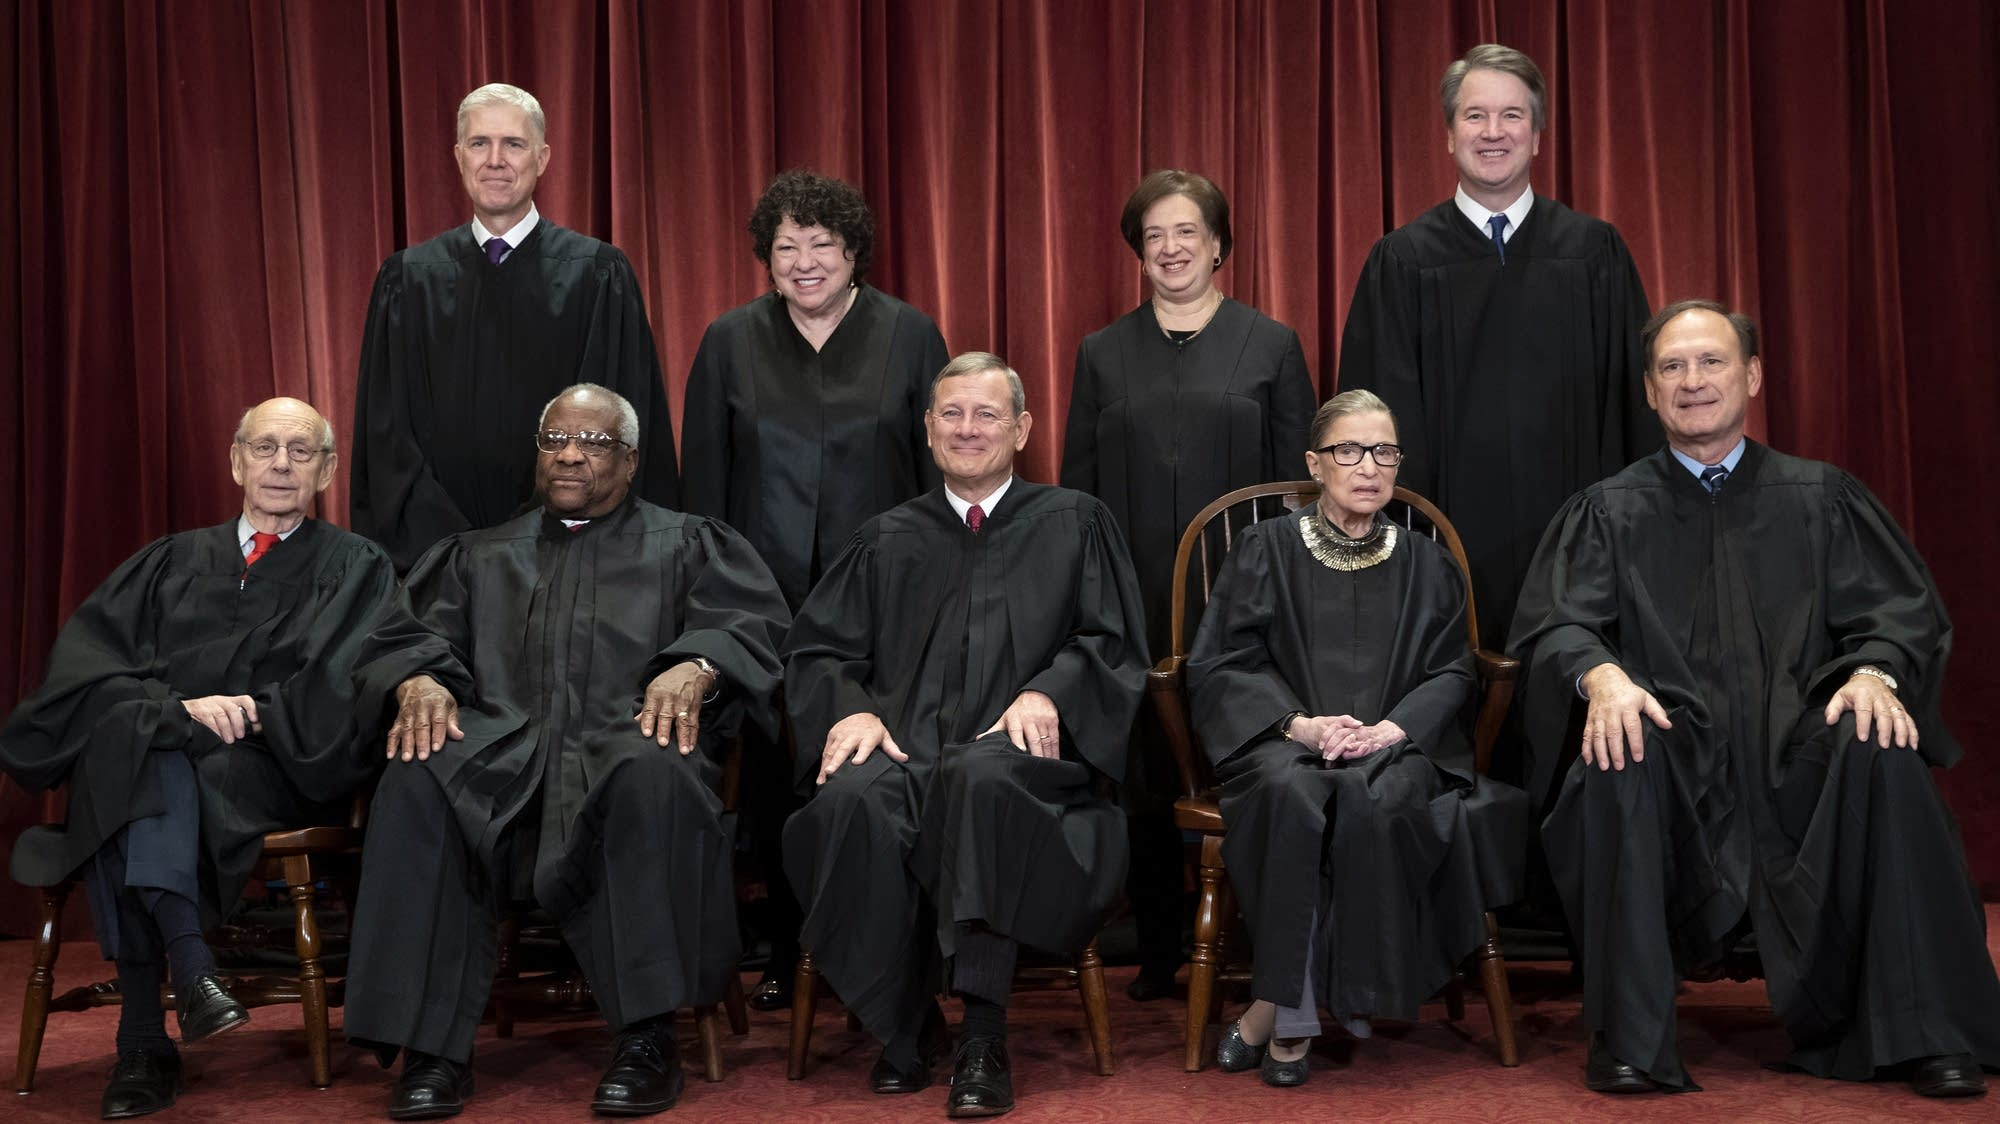 Supreme Court S Low Profile Approach To Be Tested